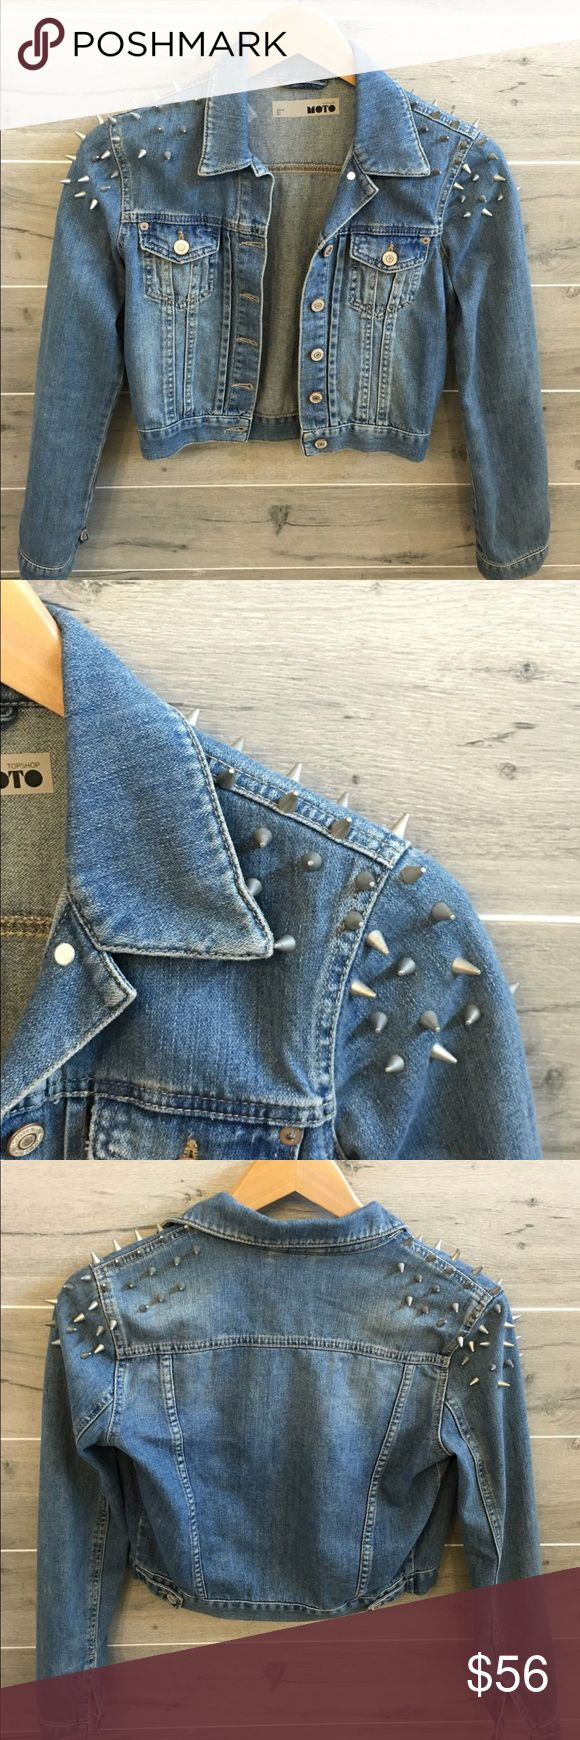 TOPSHOP spike jean jacket In perfect condition hardly worn, distressed look, all spikes intact. Purchased in TOPSHOP Madrid while on vacation Topshop Jackets & Coats Jean Jackets